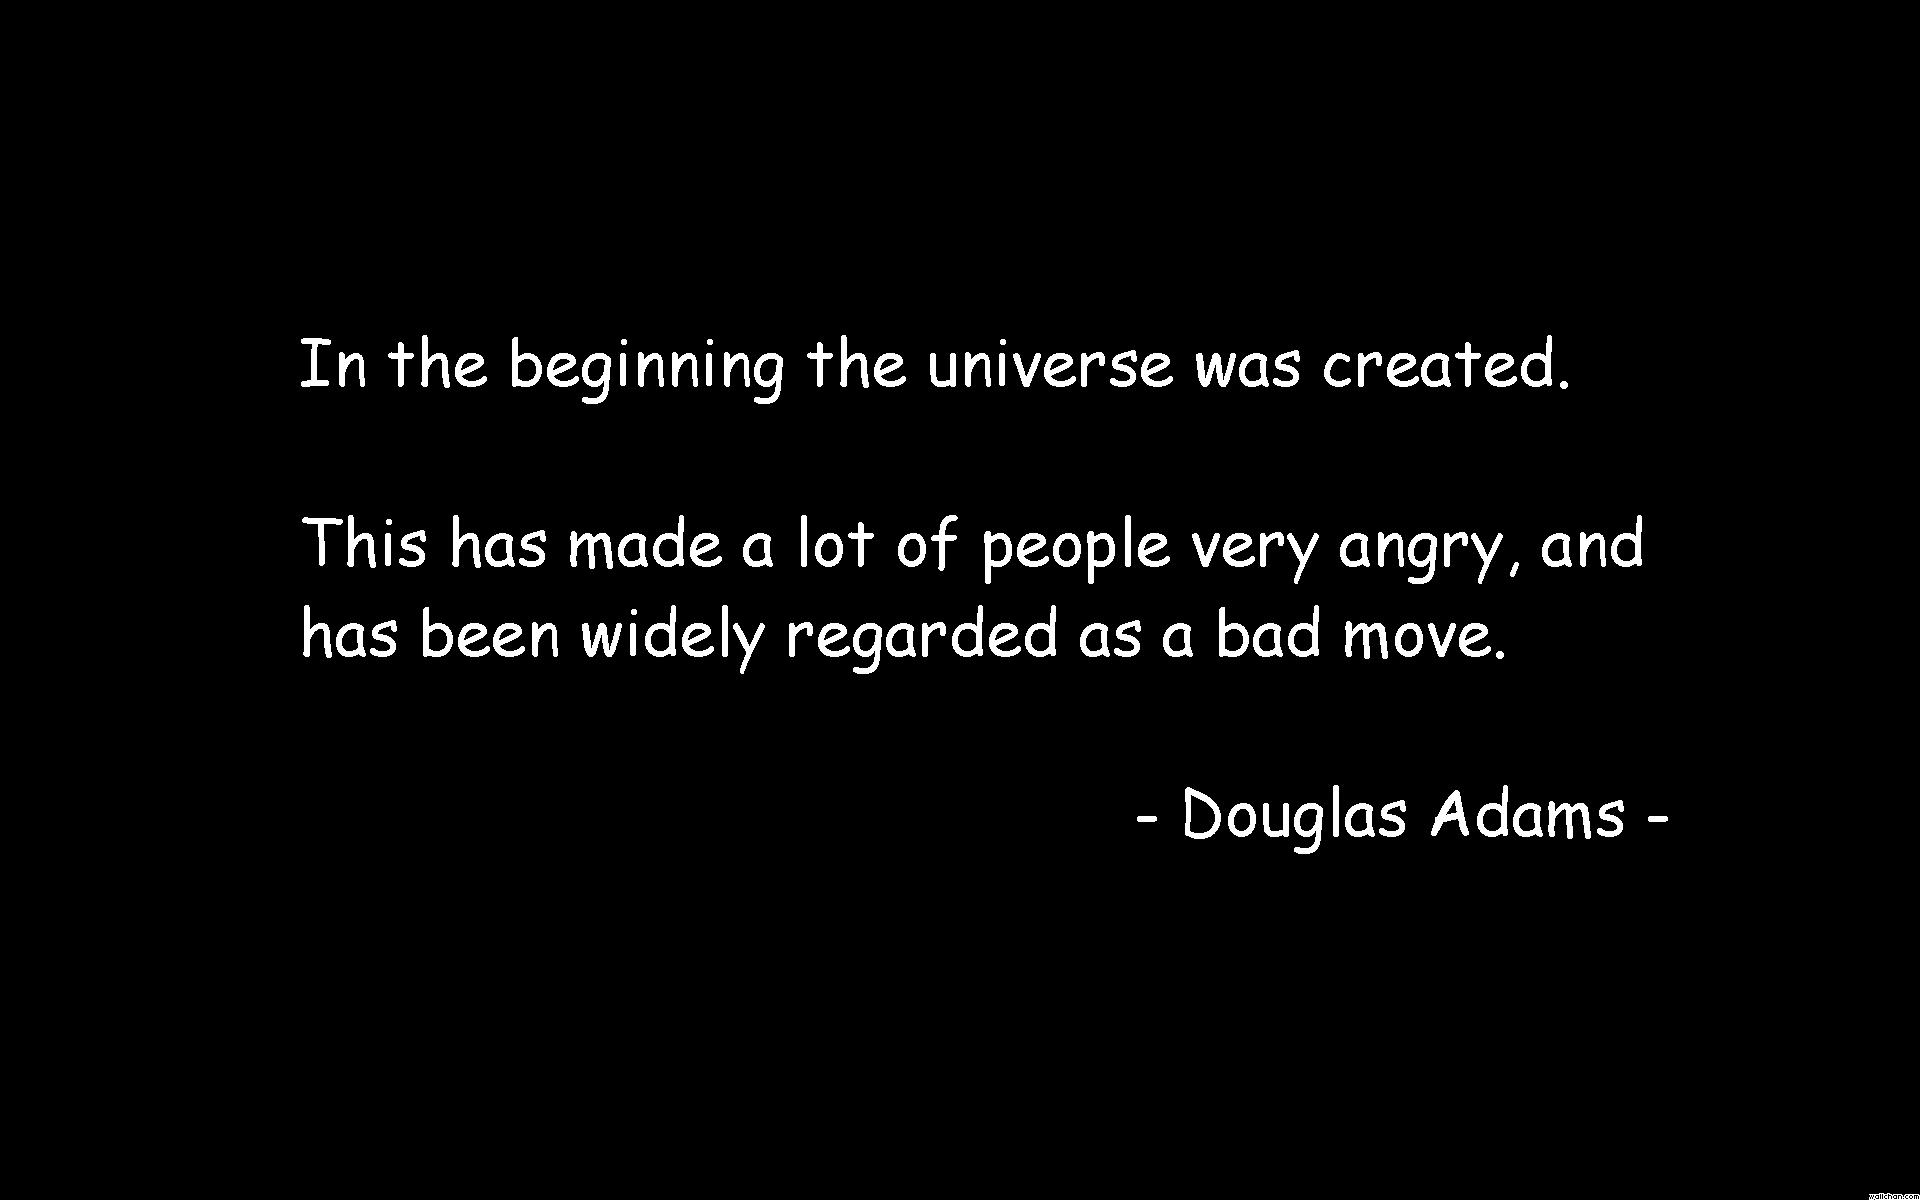 Douglas Adams Quotes and Sayings, meaningful